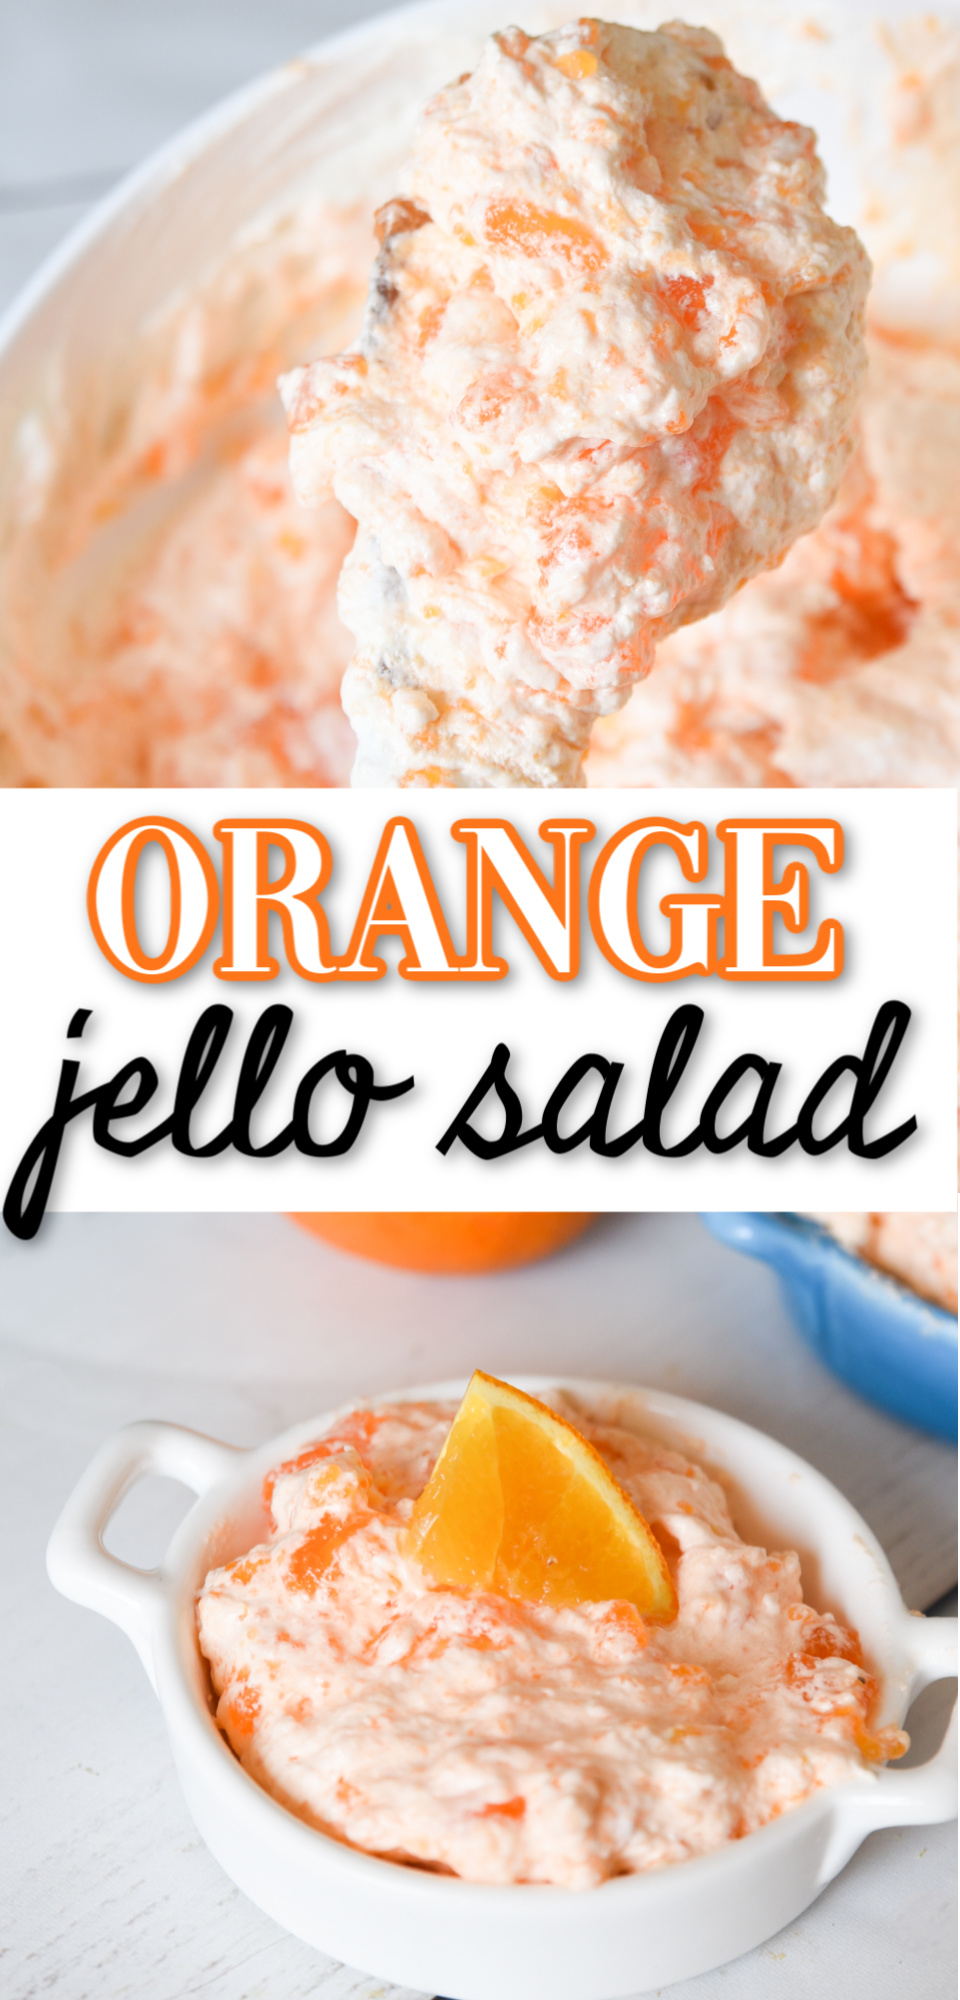 This easy orange jello salad is filled with mandarin oranges, pineapple, and whipped cream. It is the perfect easy fluff jello salad recipe! via @simplysidedishes89